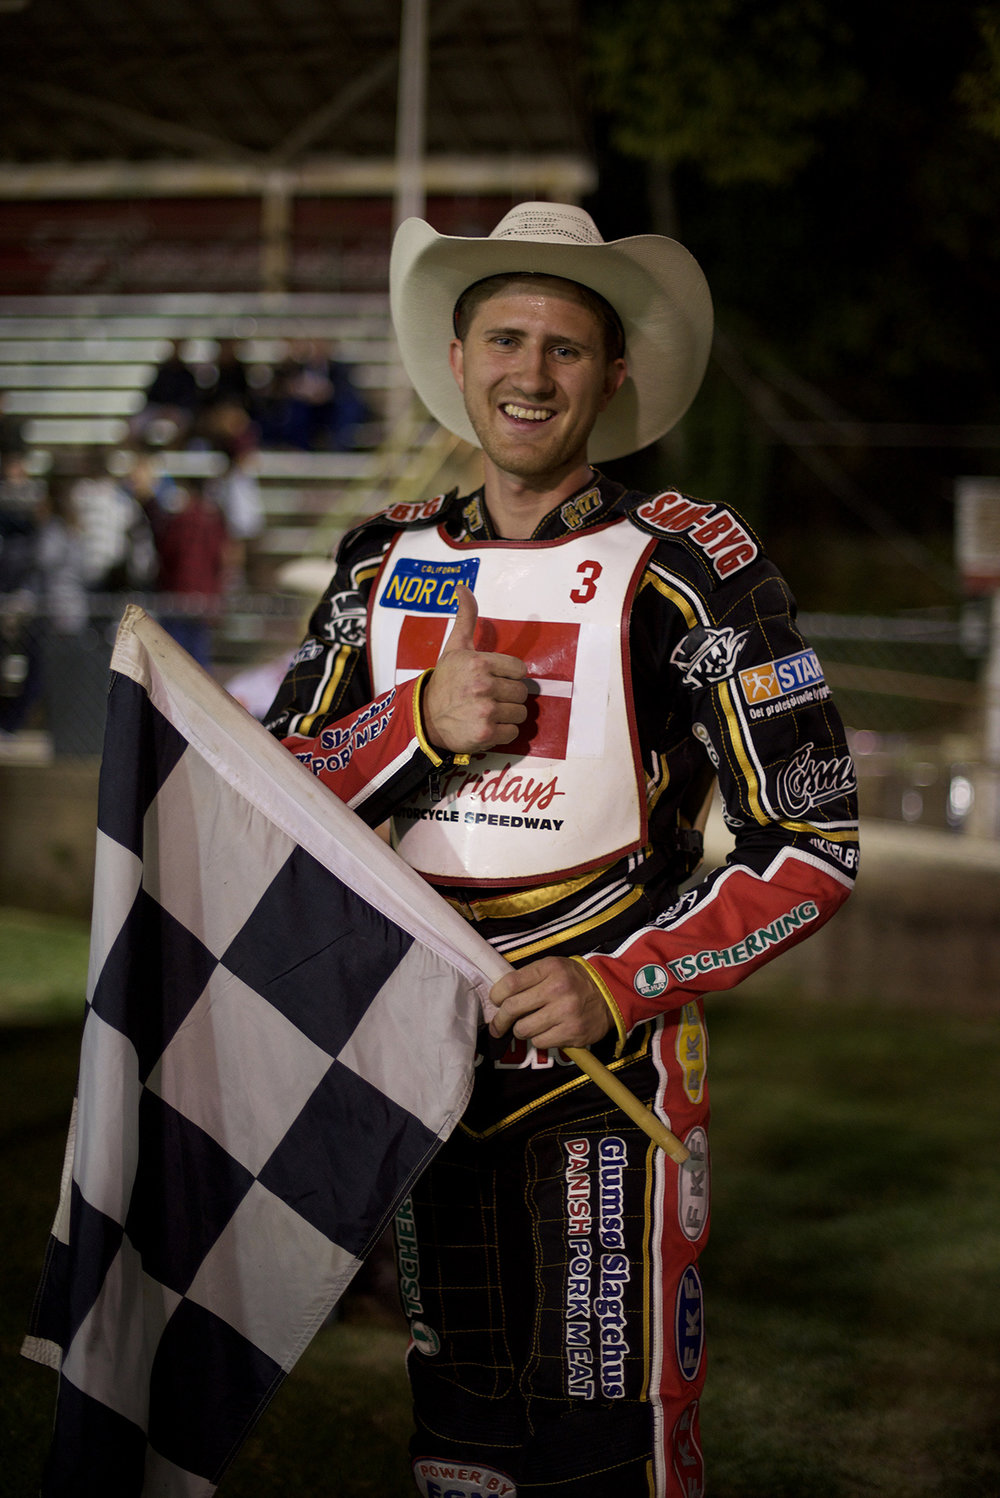 Mikkel Beck came all the way from Denmark to race and came home with a trophy and a cowboy hat. Love the Danish Pork Meat sponsorship.